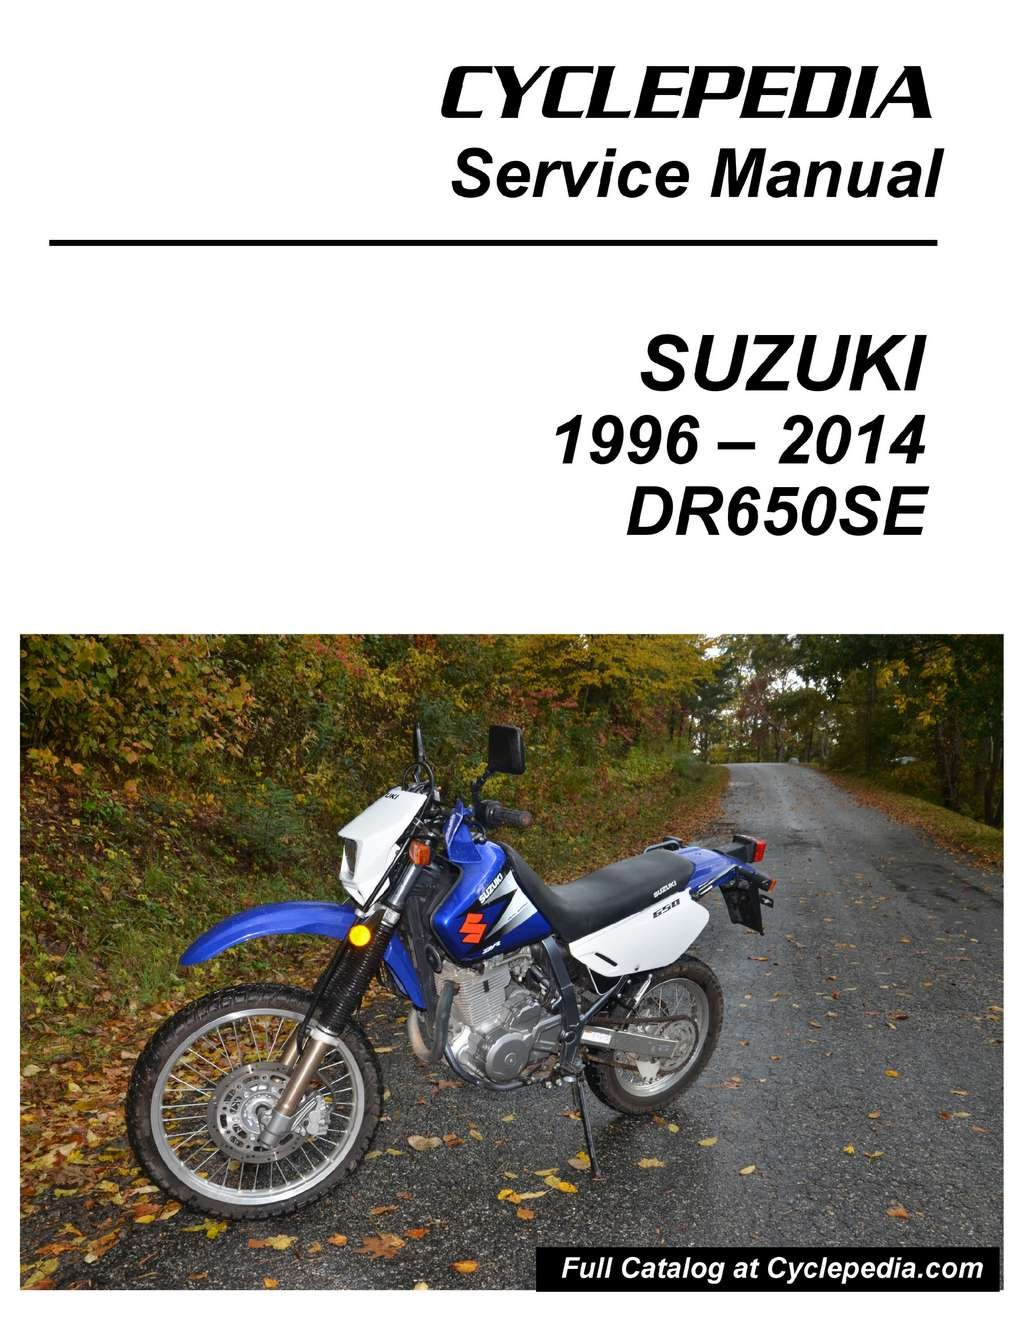 Cpp 175 P Suzuki Dr650se Motorcycle Service Manual Printed Wiring Diagram Cyclepedia Manufacturer Books